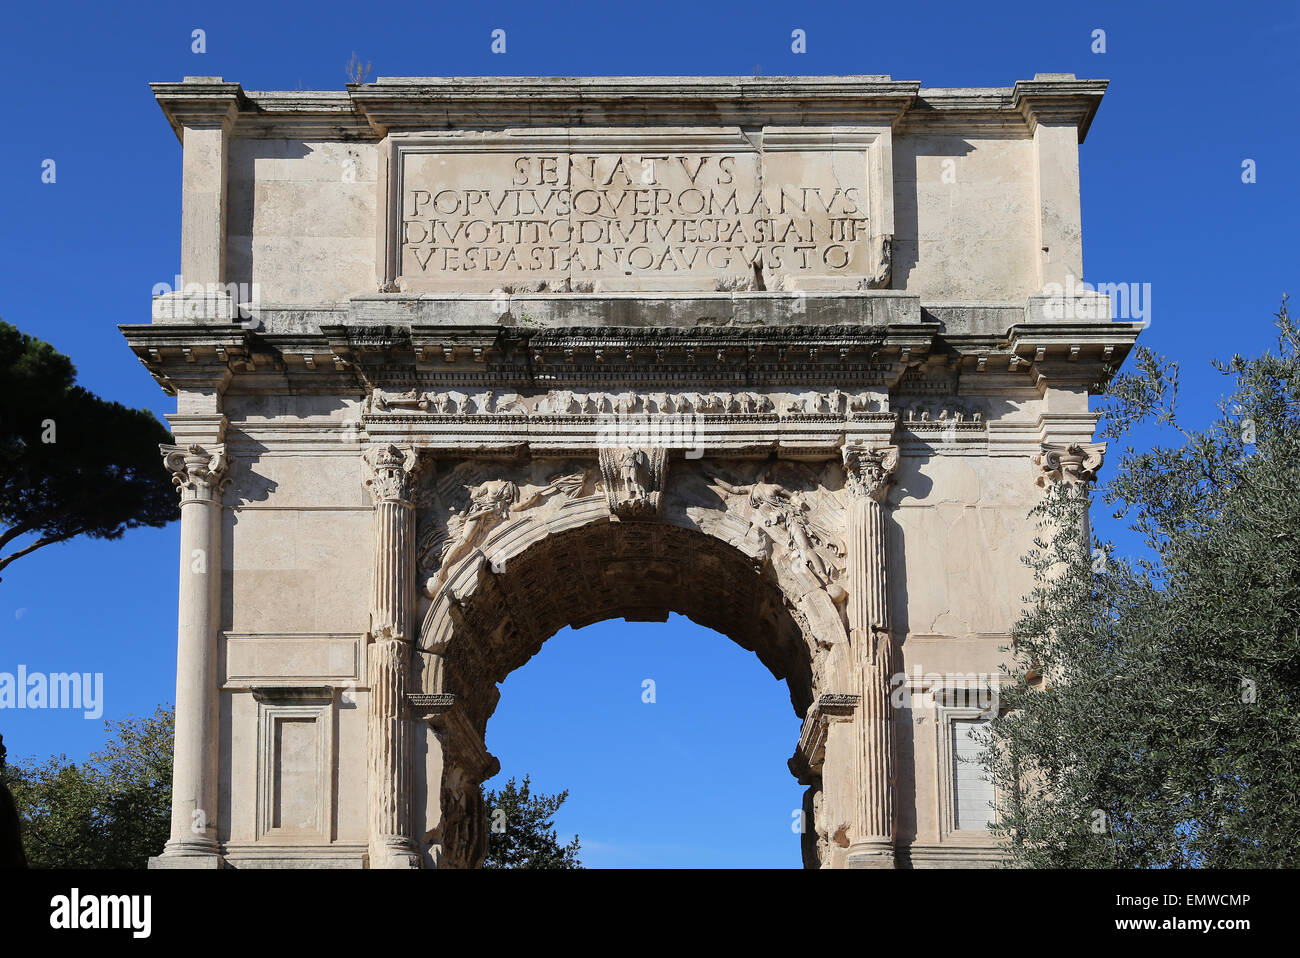 Italy. Rome. Arch of Titus. Constructed in 82 AD by the emperor Domitian to commemorate Titus' victories. - Stock Image